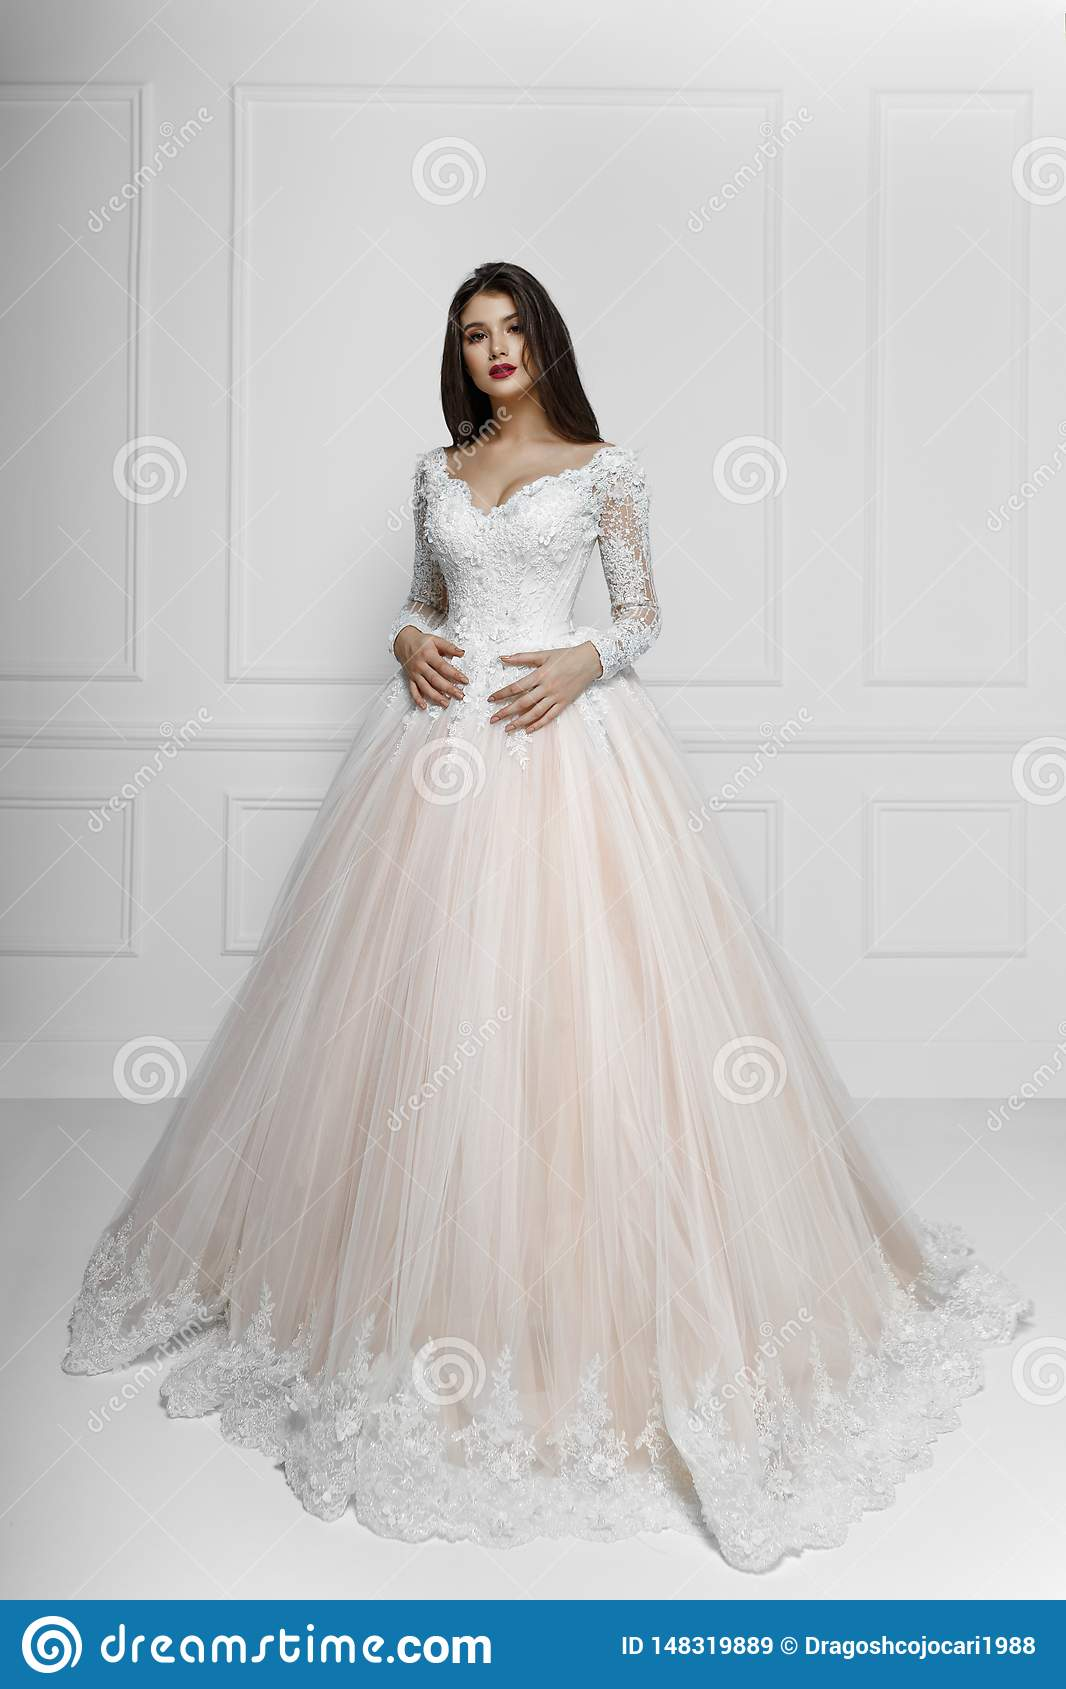 Frontal View Of A Fashion Model In Long Elegant Wedding Dress